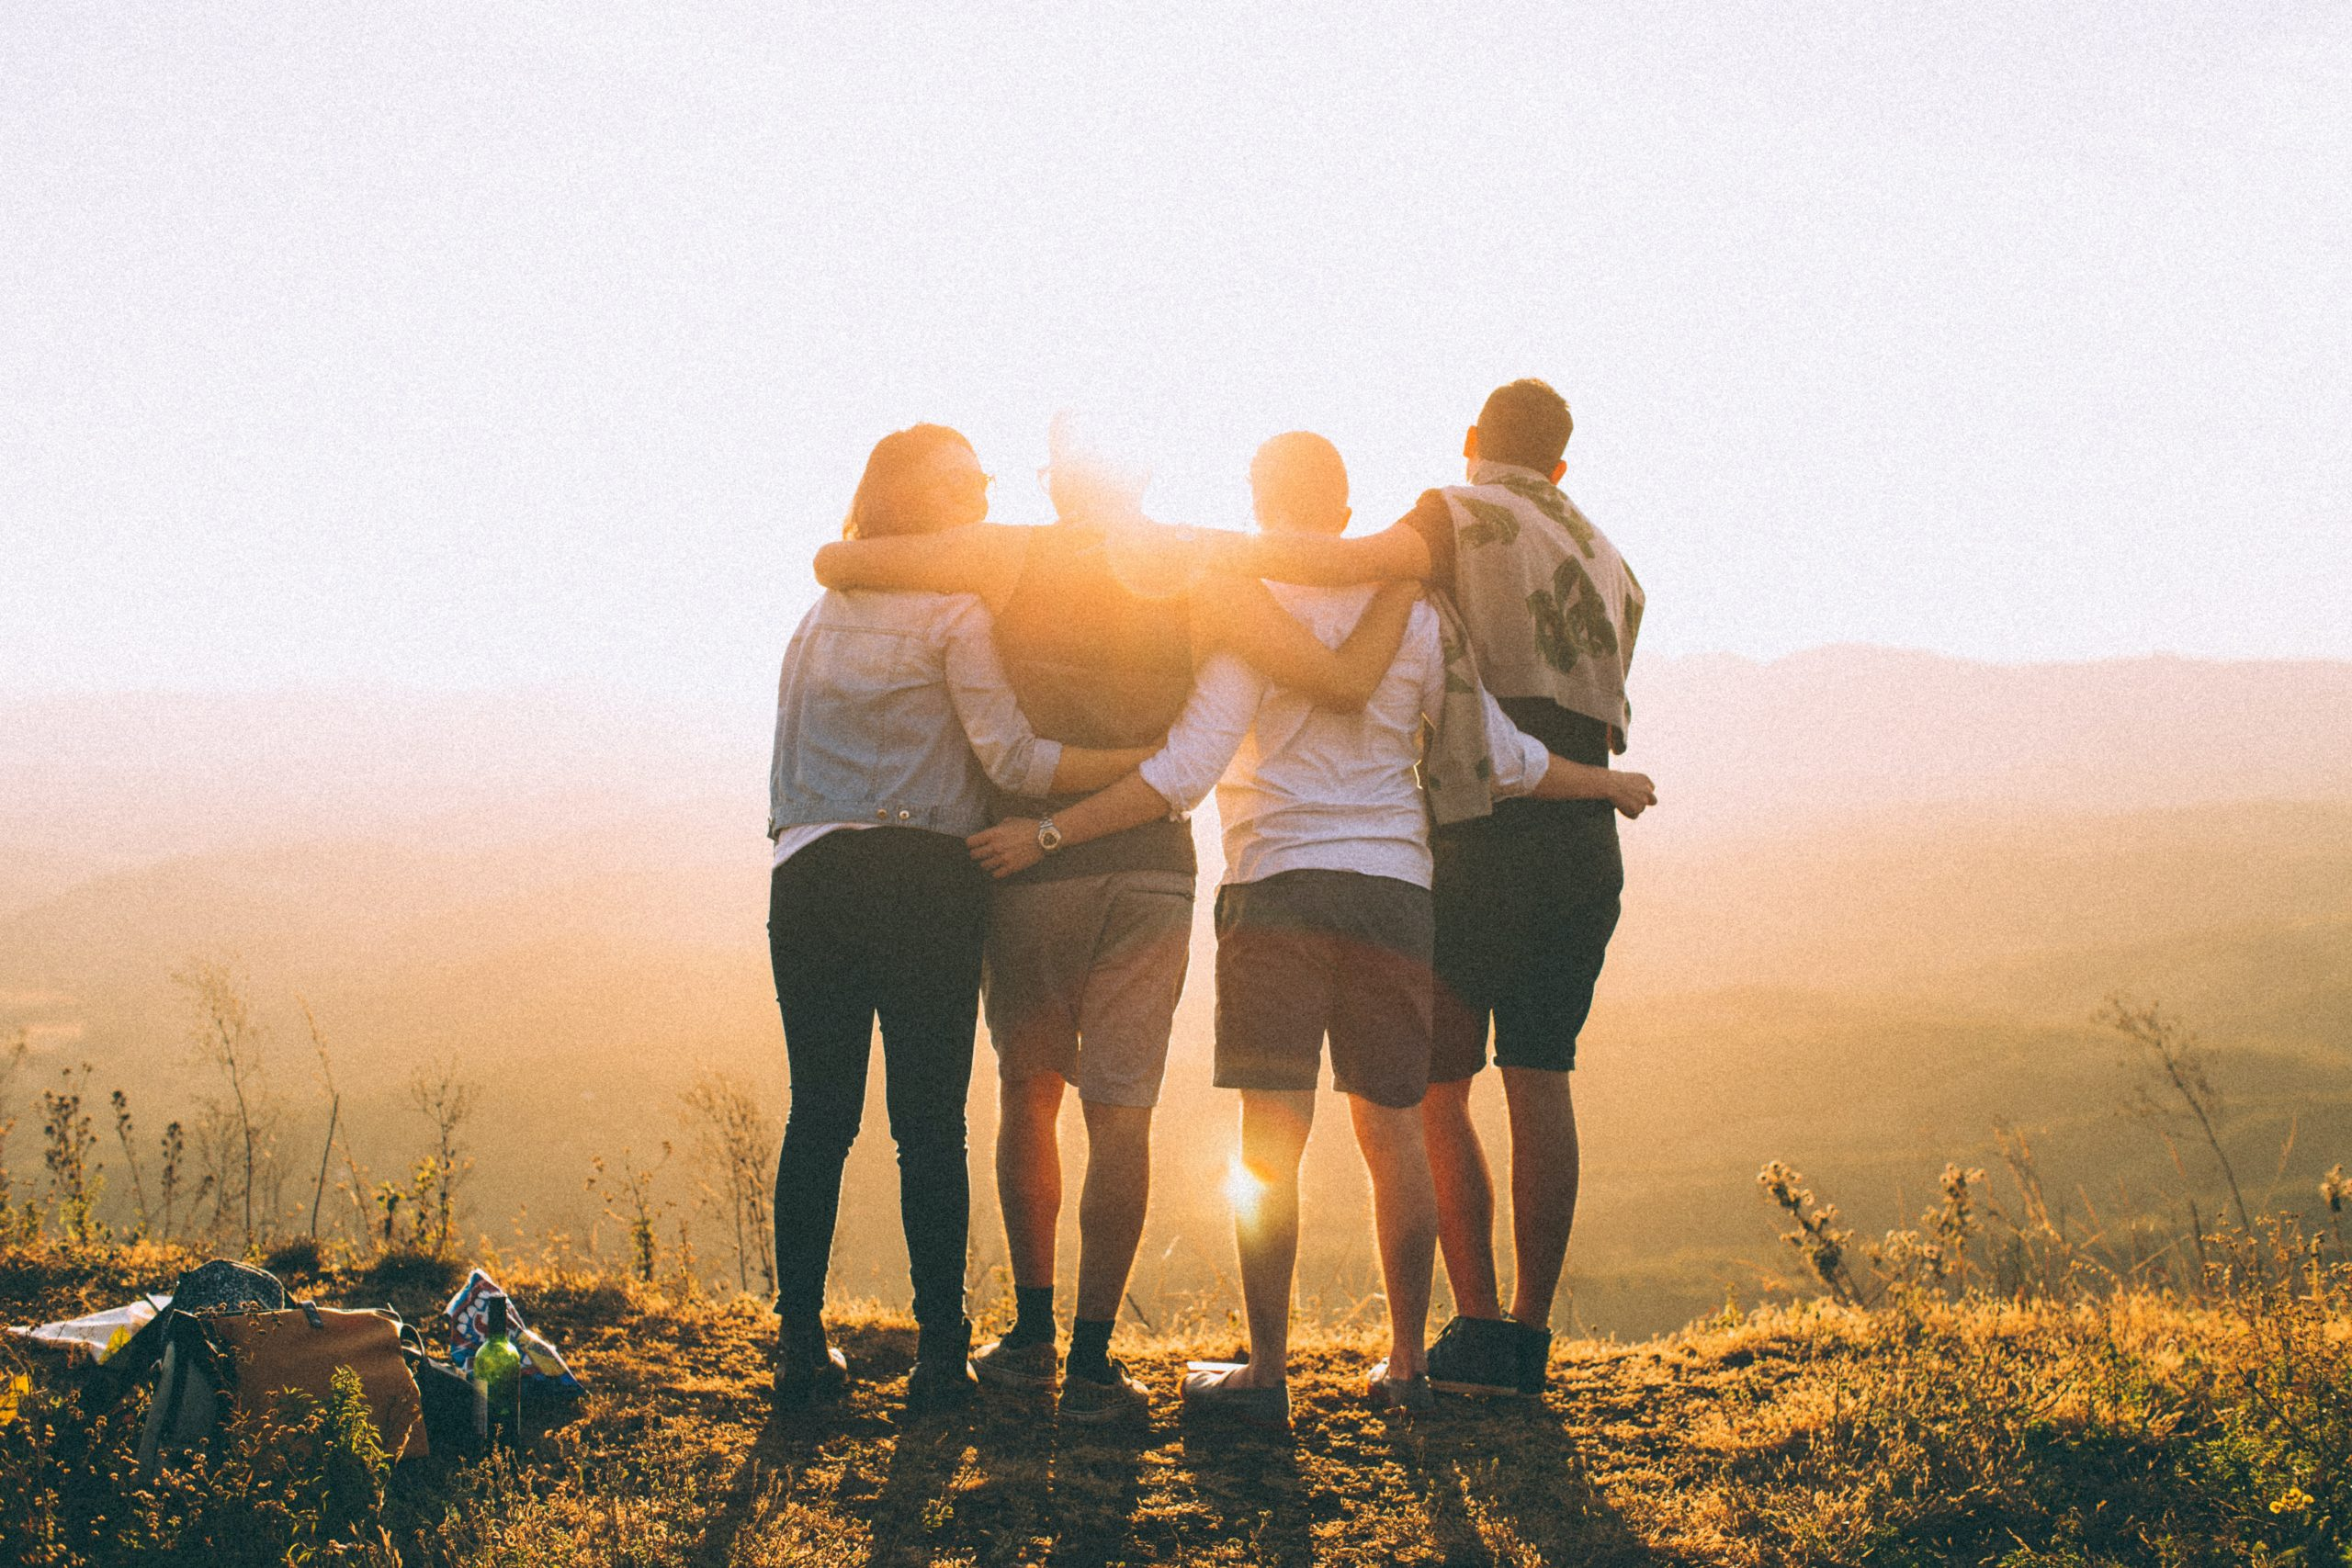 Group standing in sun